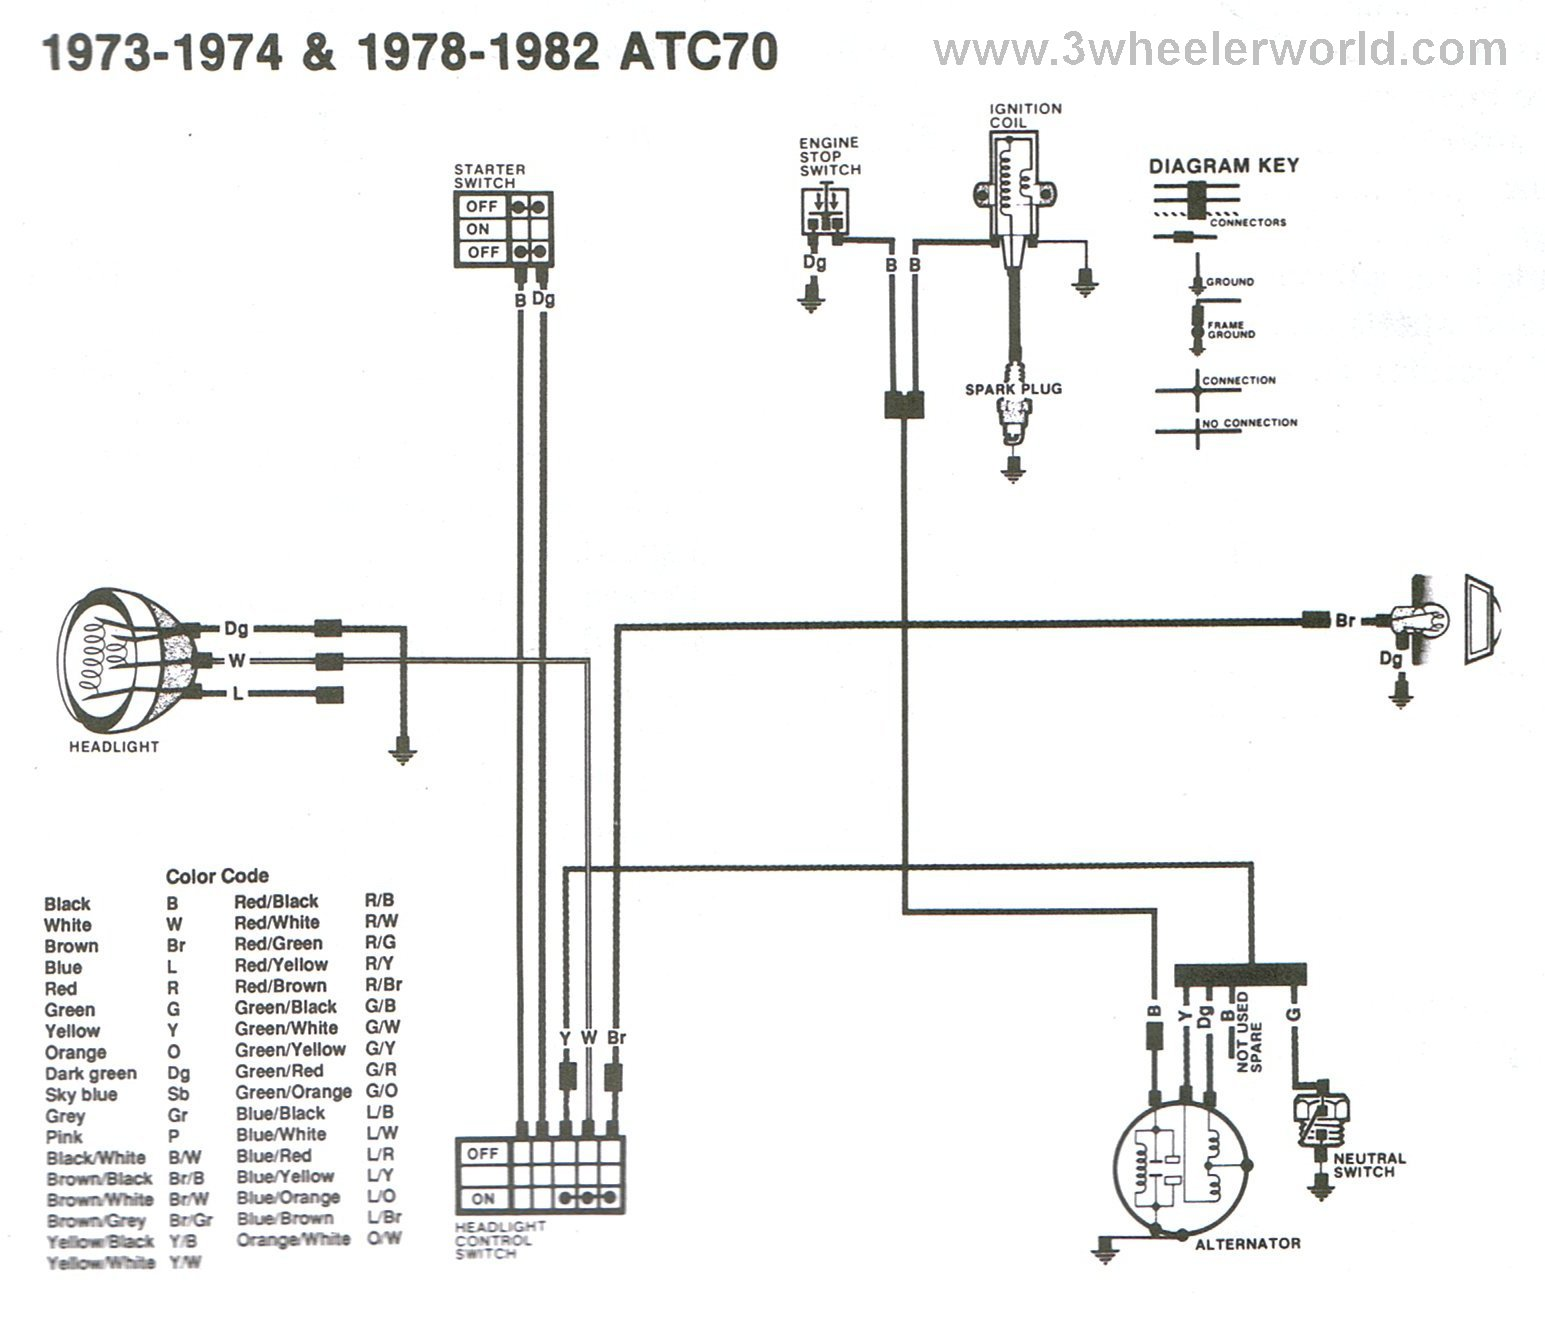 ATC70x73Thru82 3 wheeler world tech help honda wiring diagrams 1986 honda atc 250r wiring diagram at eliteediting.co